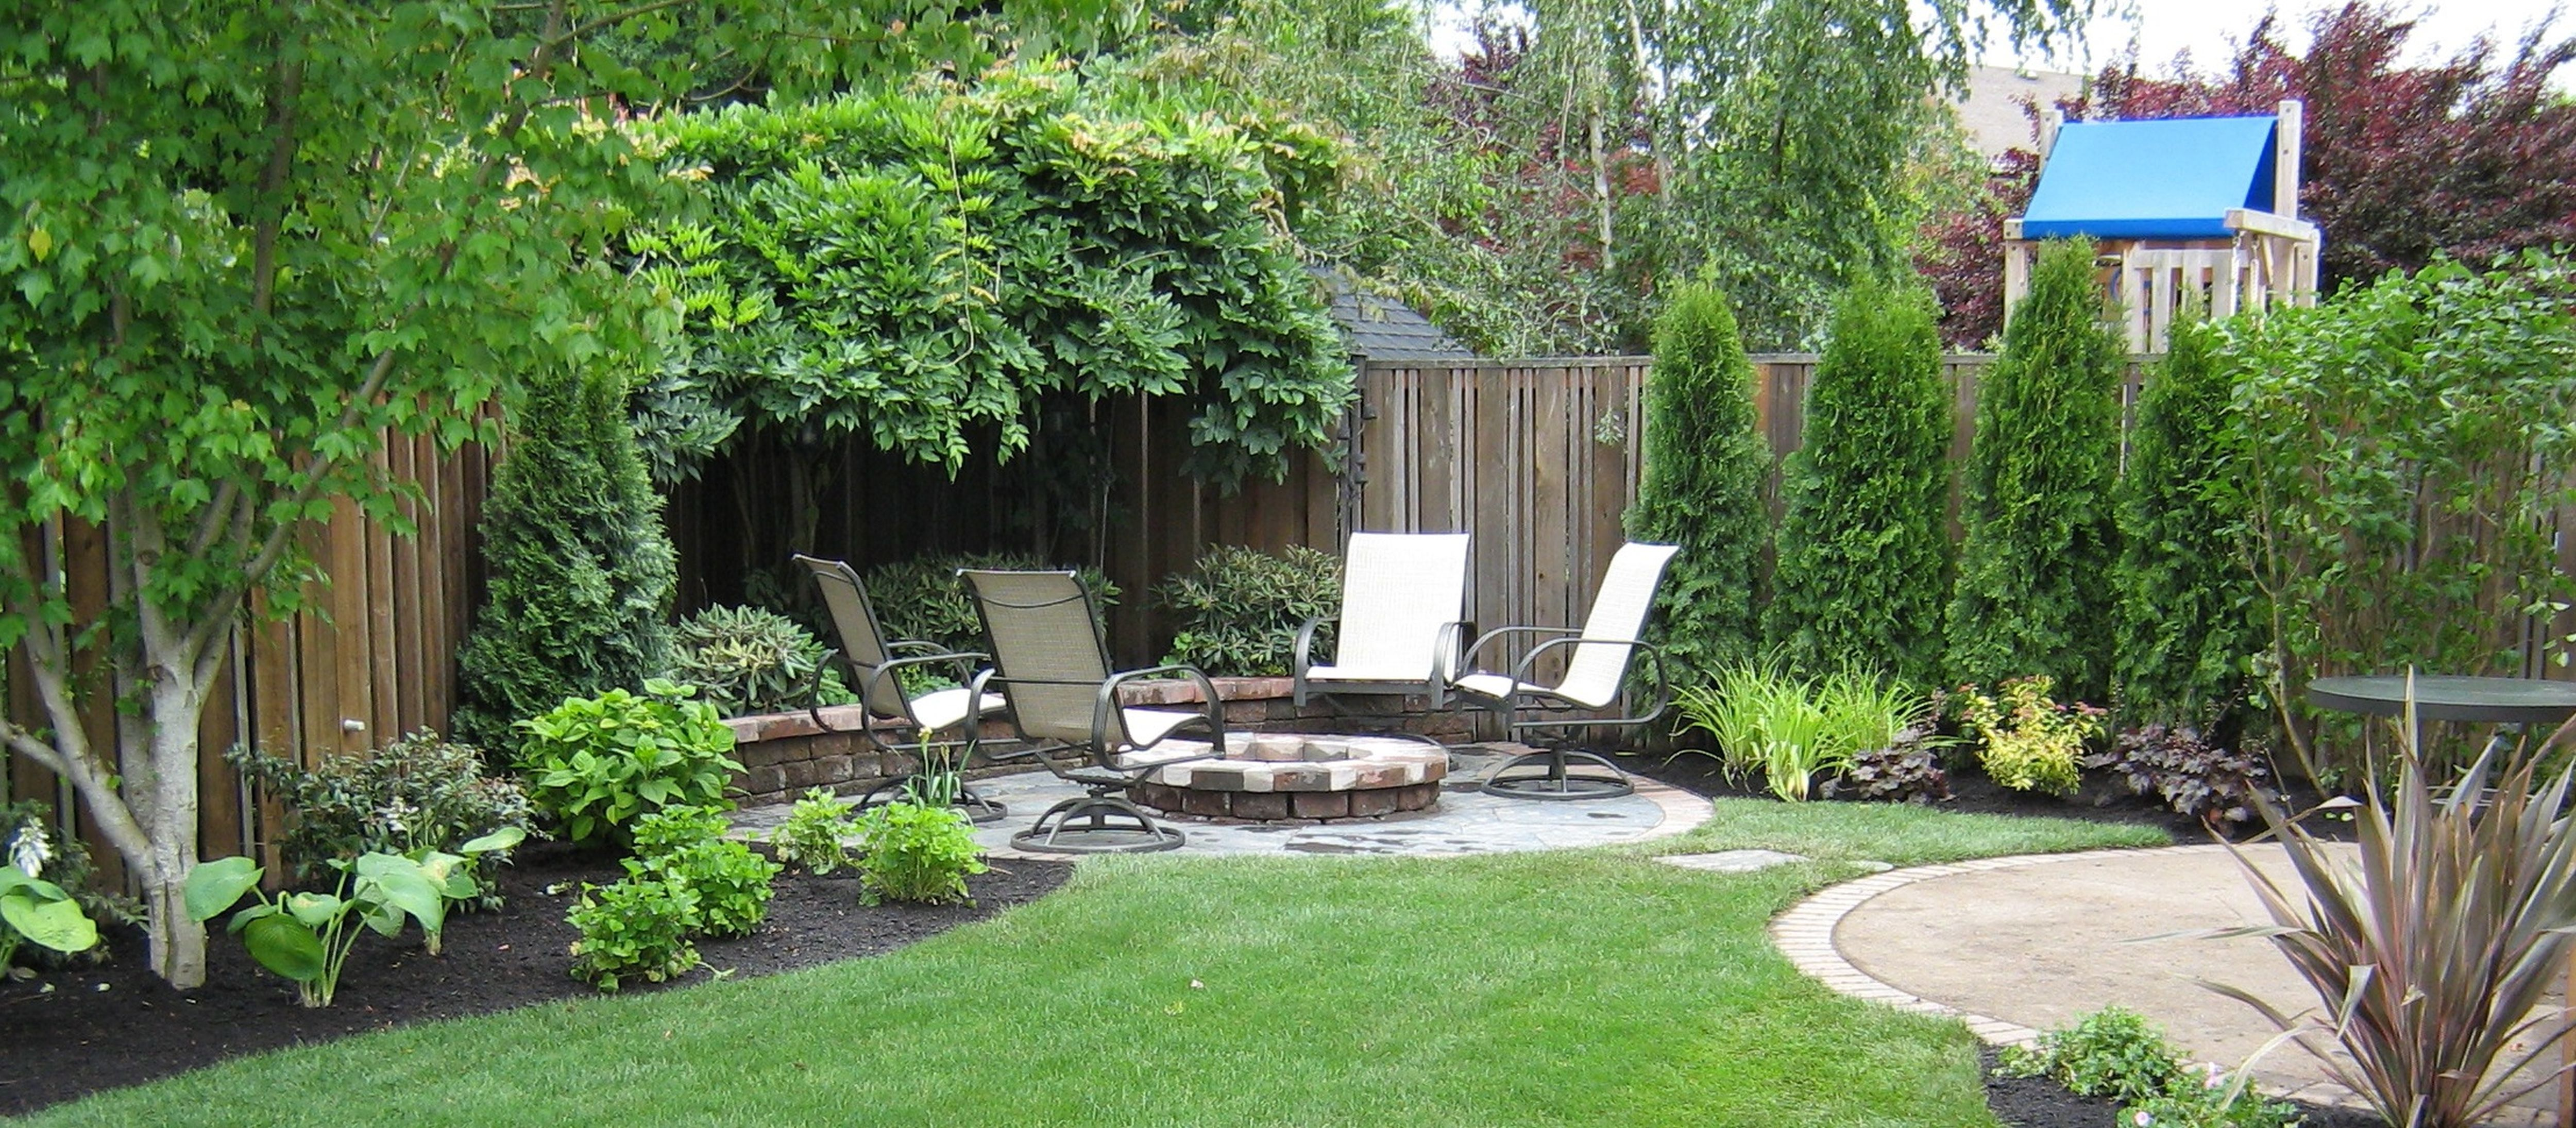 Simple Landscaping Ideas For A Small Space Gardens Backyards